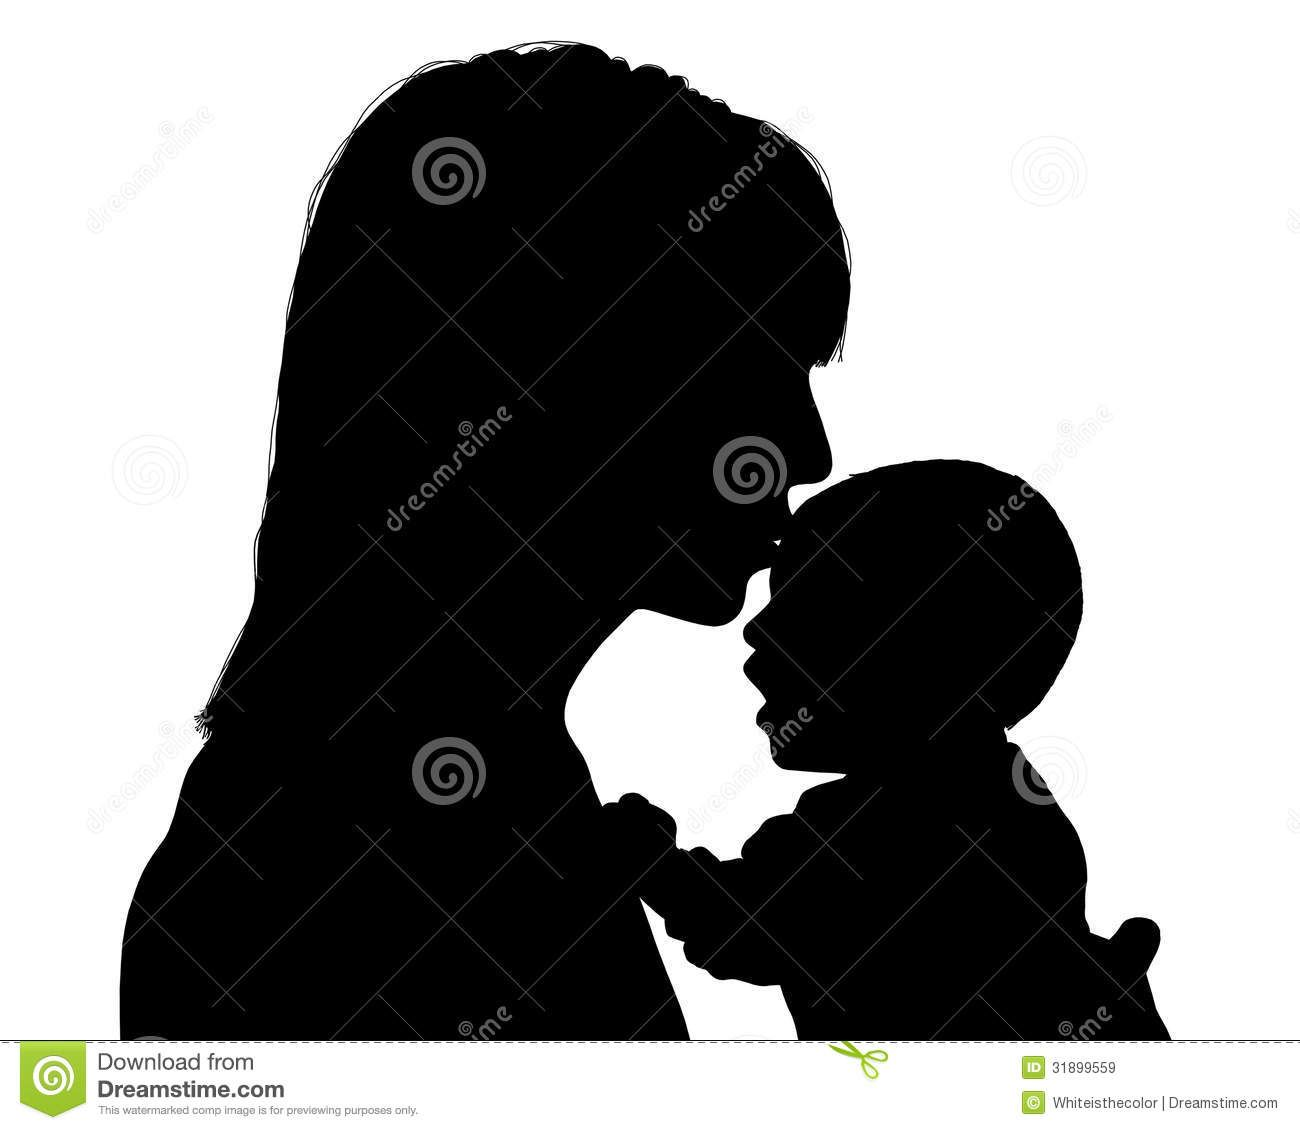 Babies with kisses clipart clip art transparent stock Mother Kissing Her Newborn Child Silhouette Royalty Free Stock ... clip art transparent stock